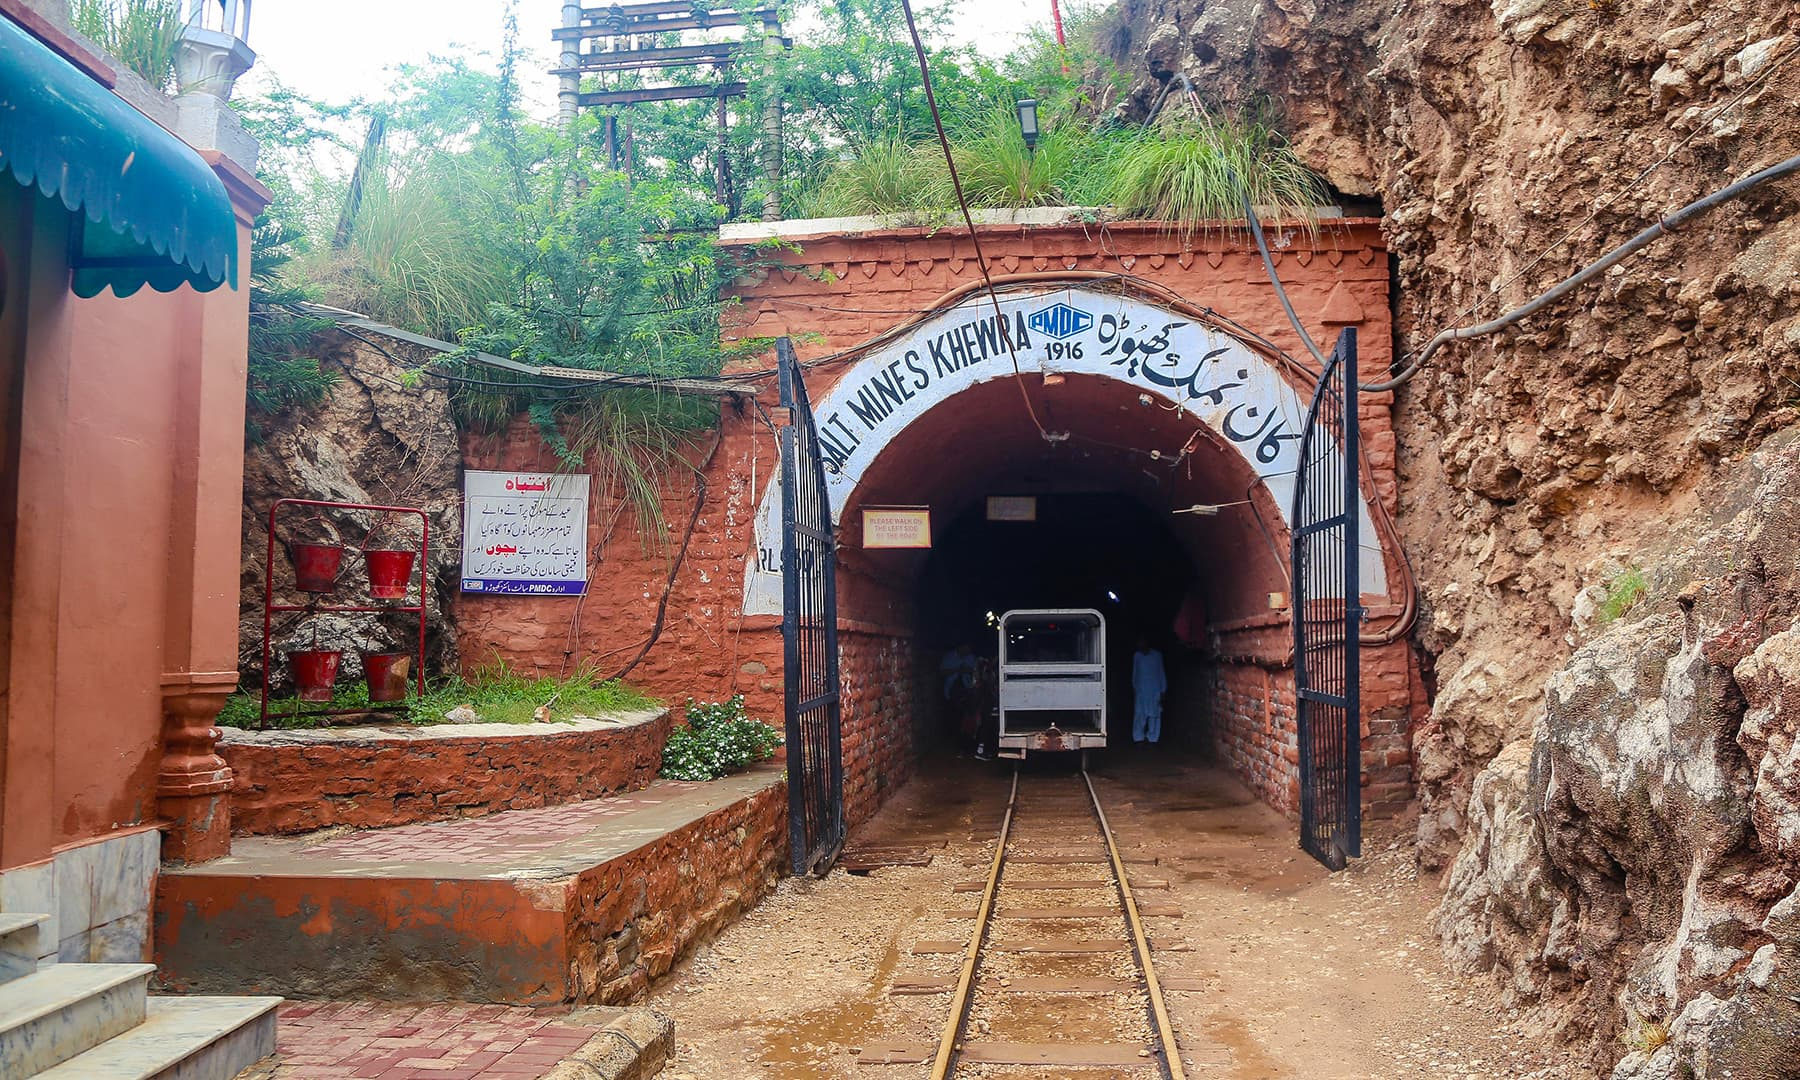 The entrance to the Khewra Salt Mines for tourists.